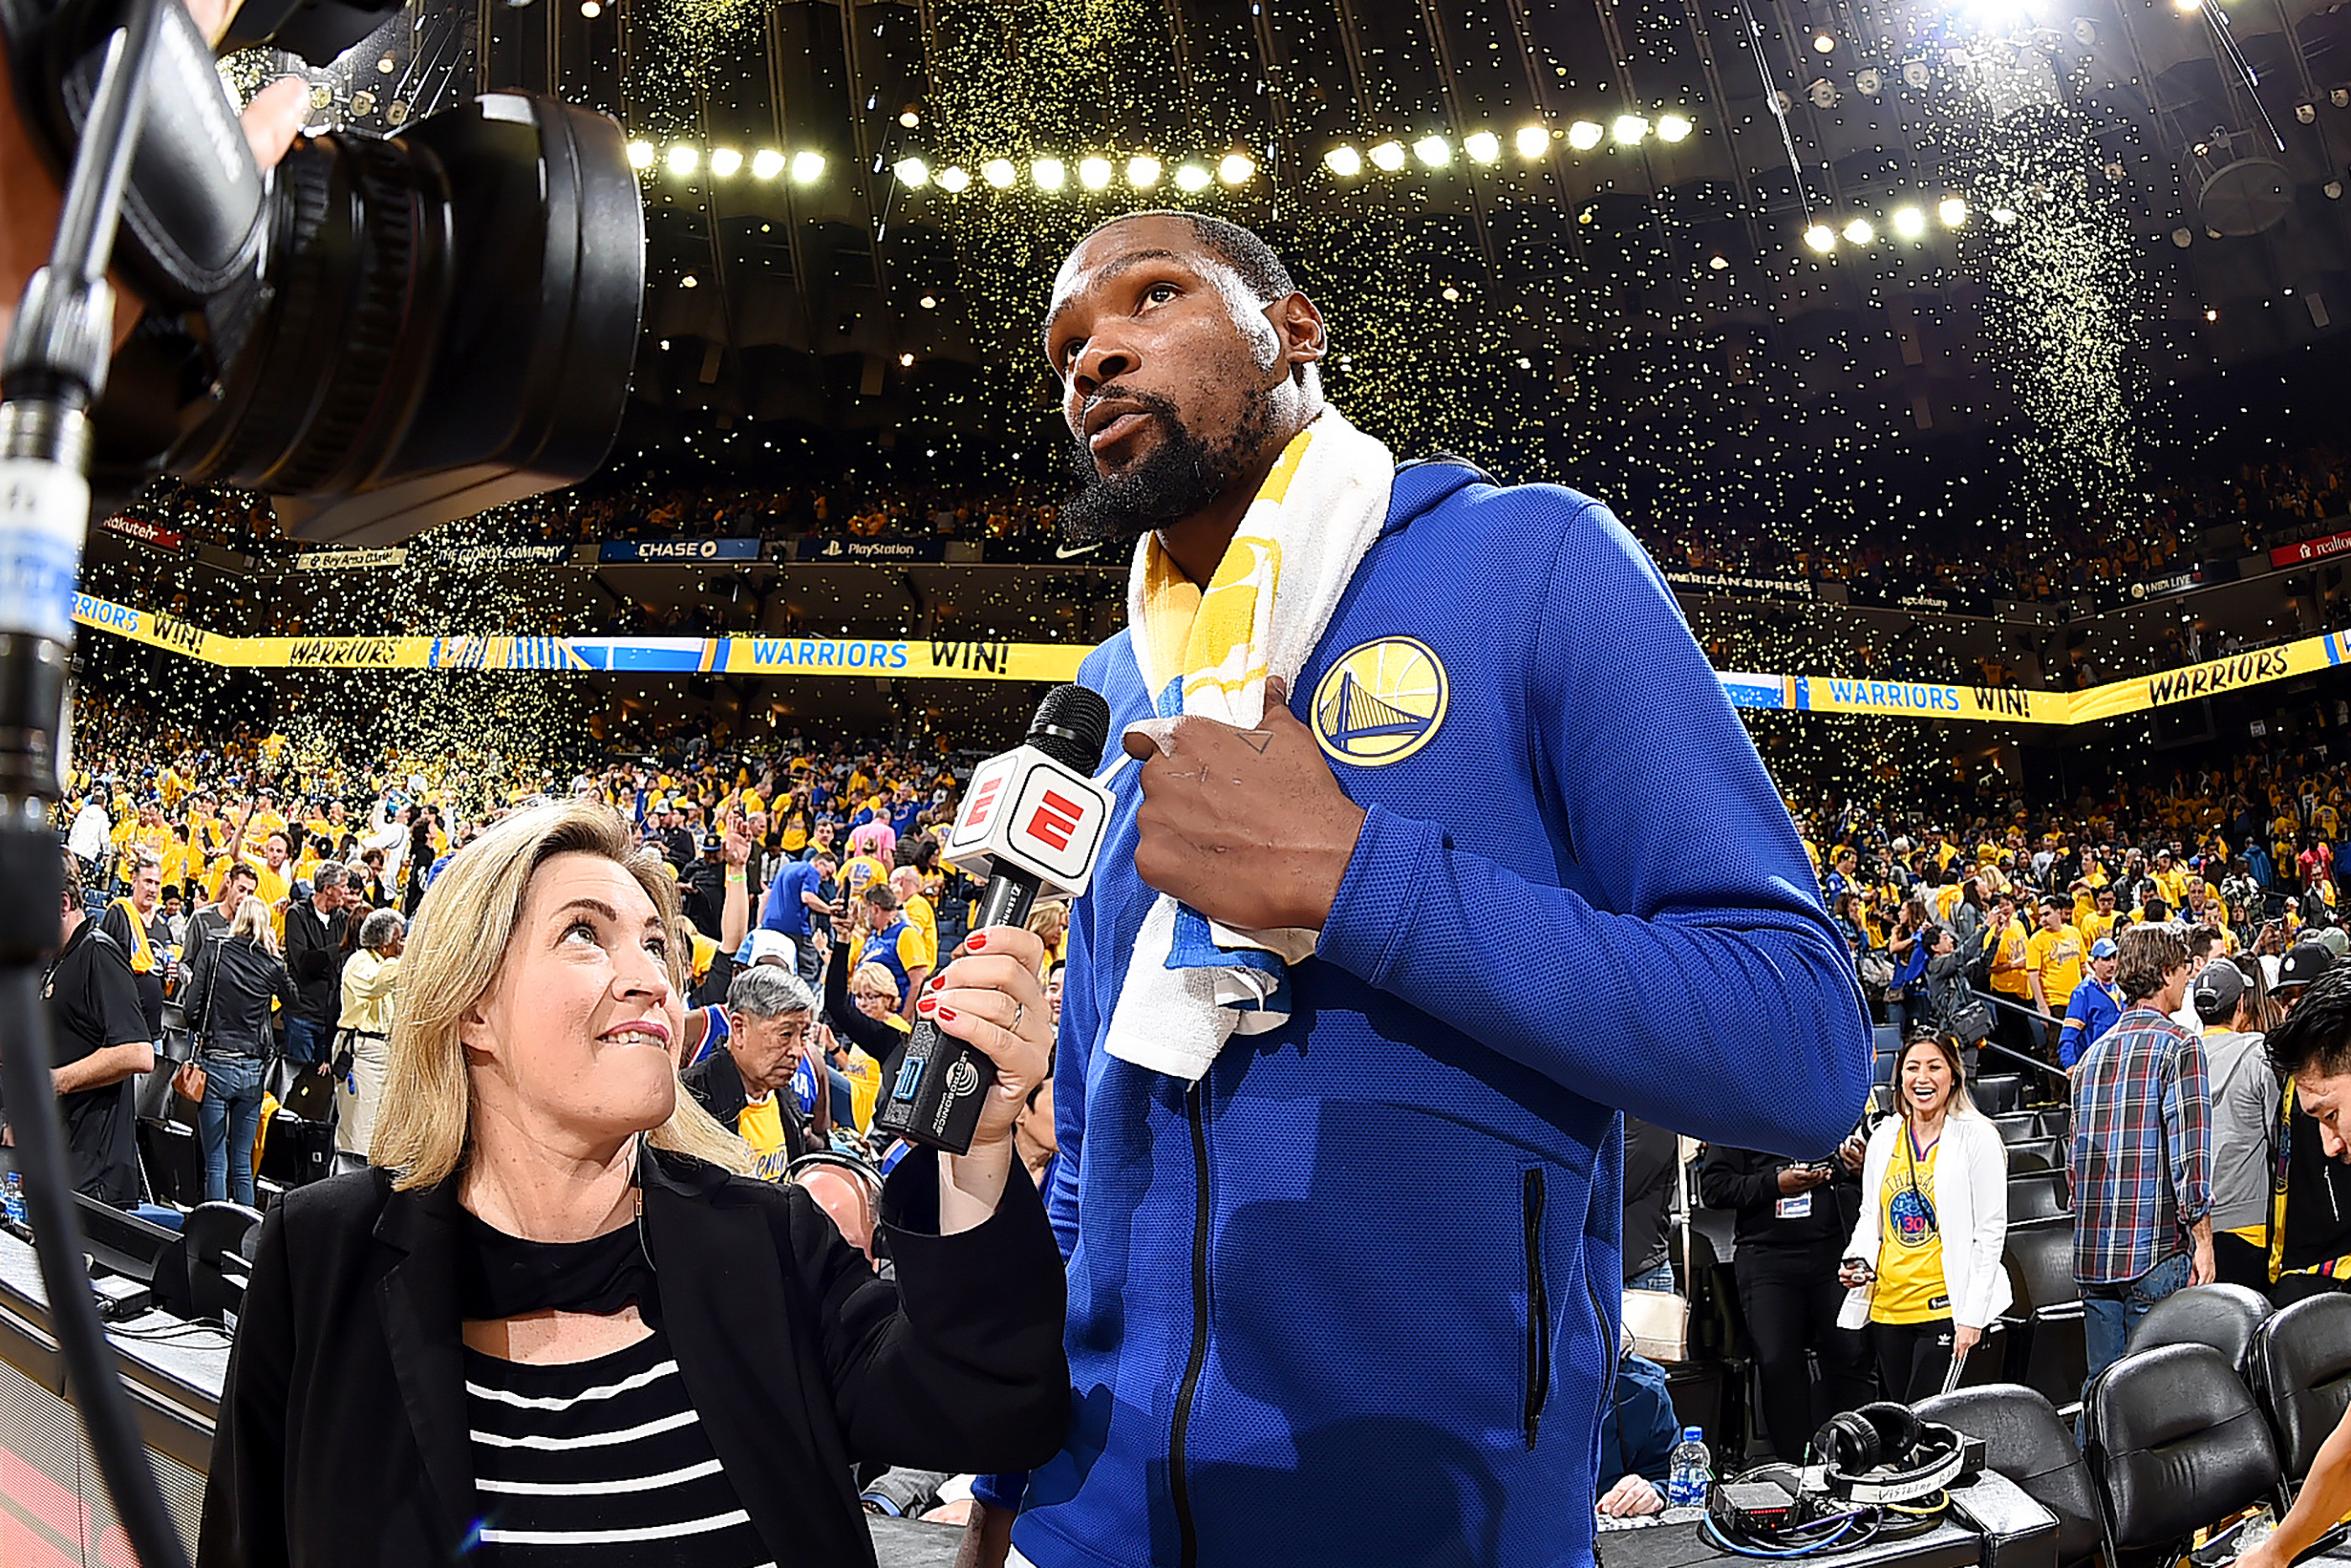 180531-wealthiest-nba-players-kevin-durant